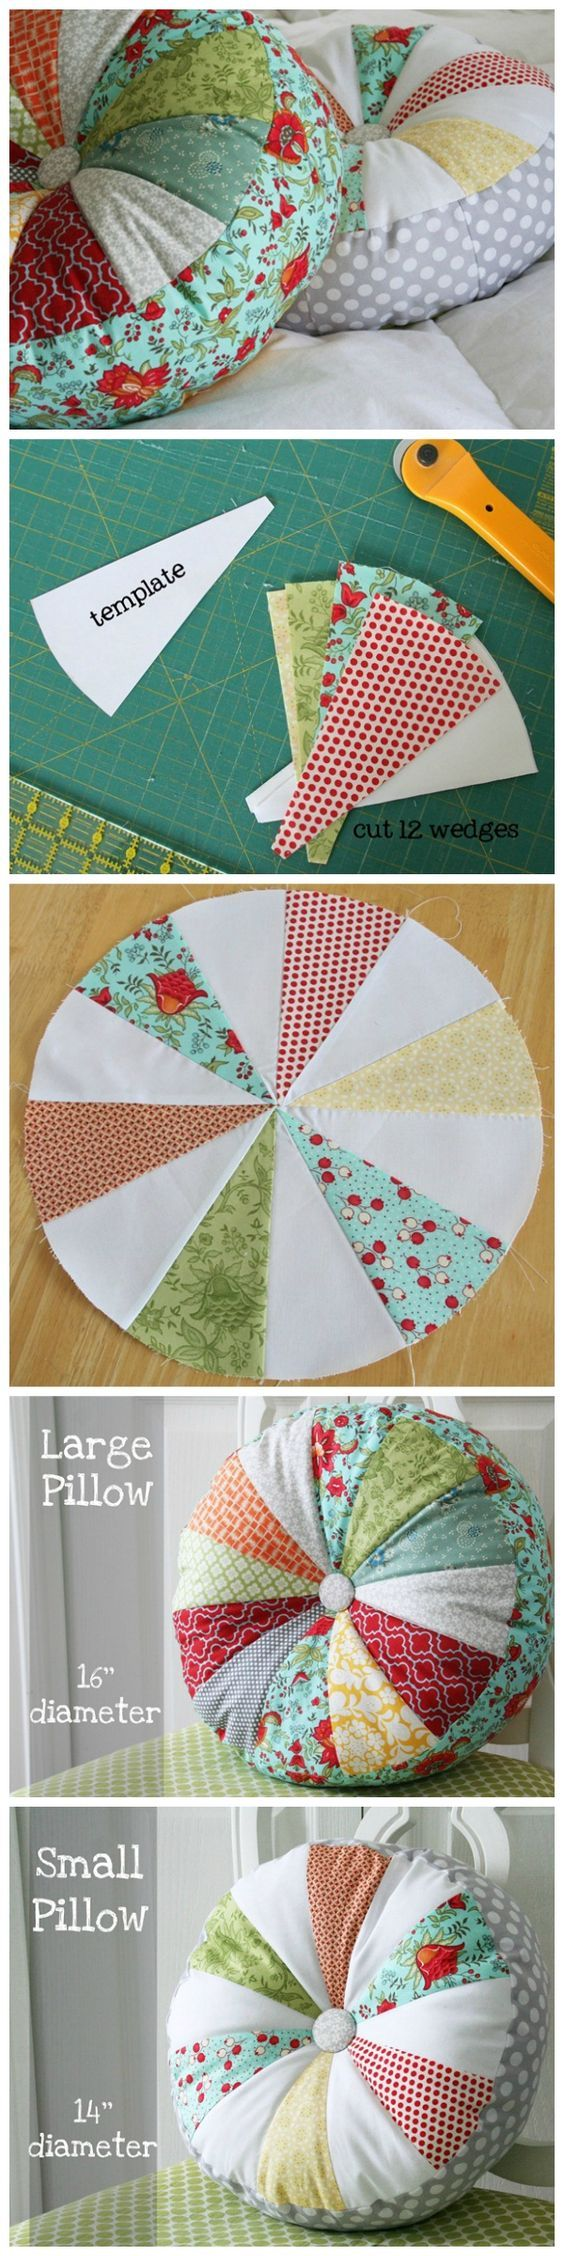 DIY Sprocket Pillows Tutorial: